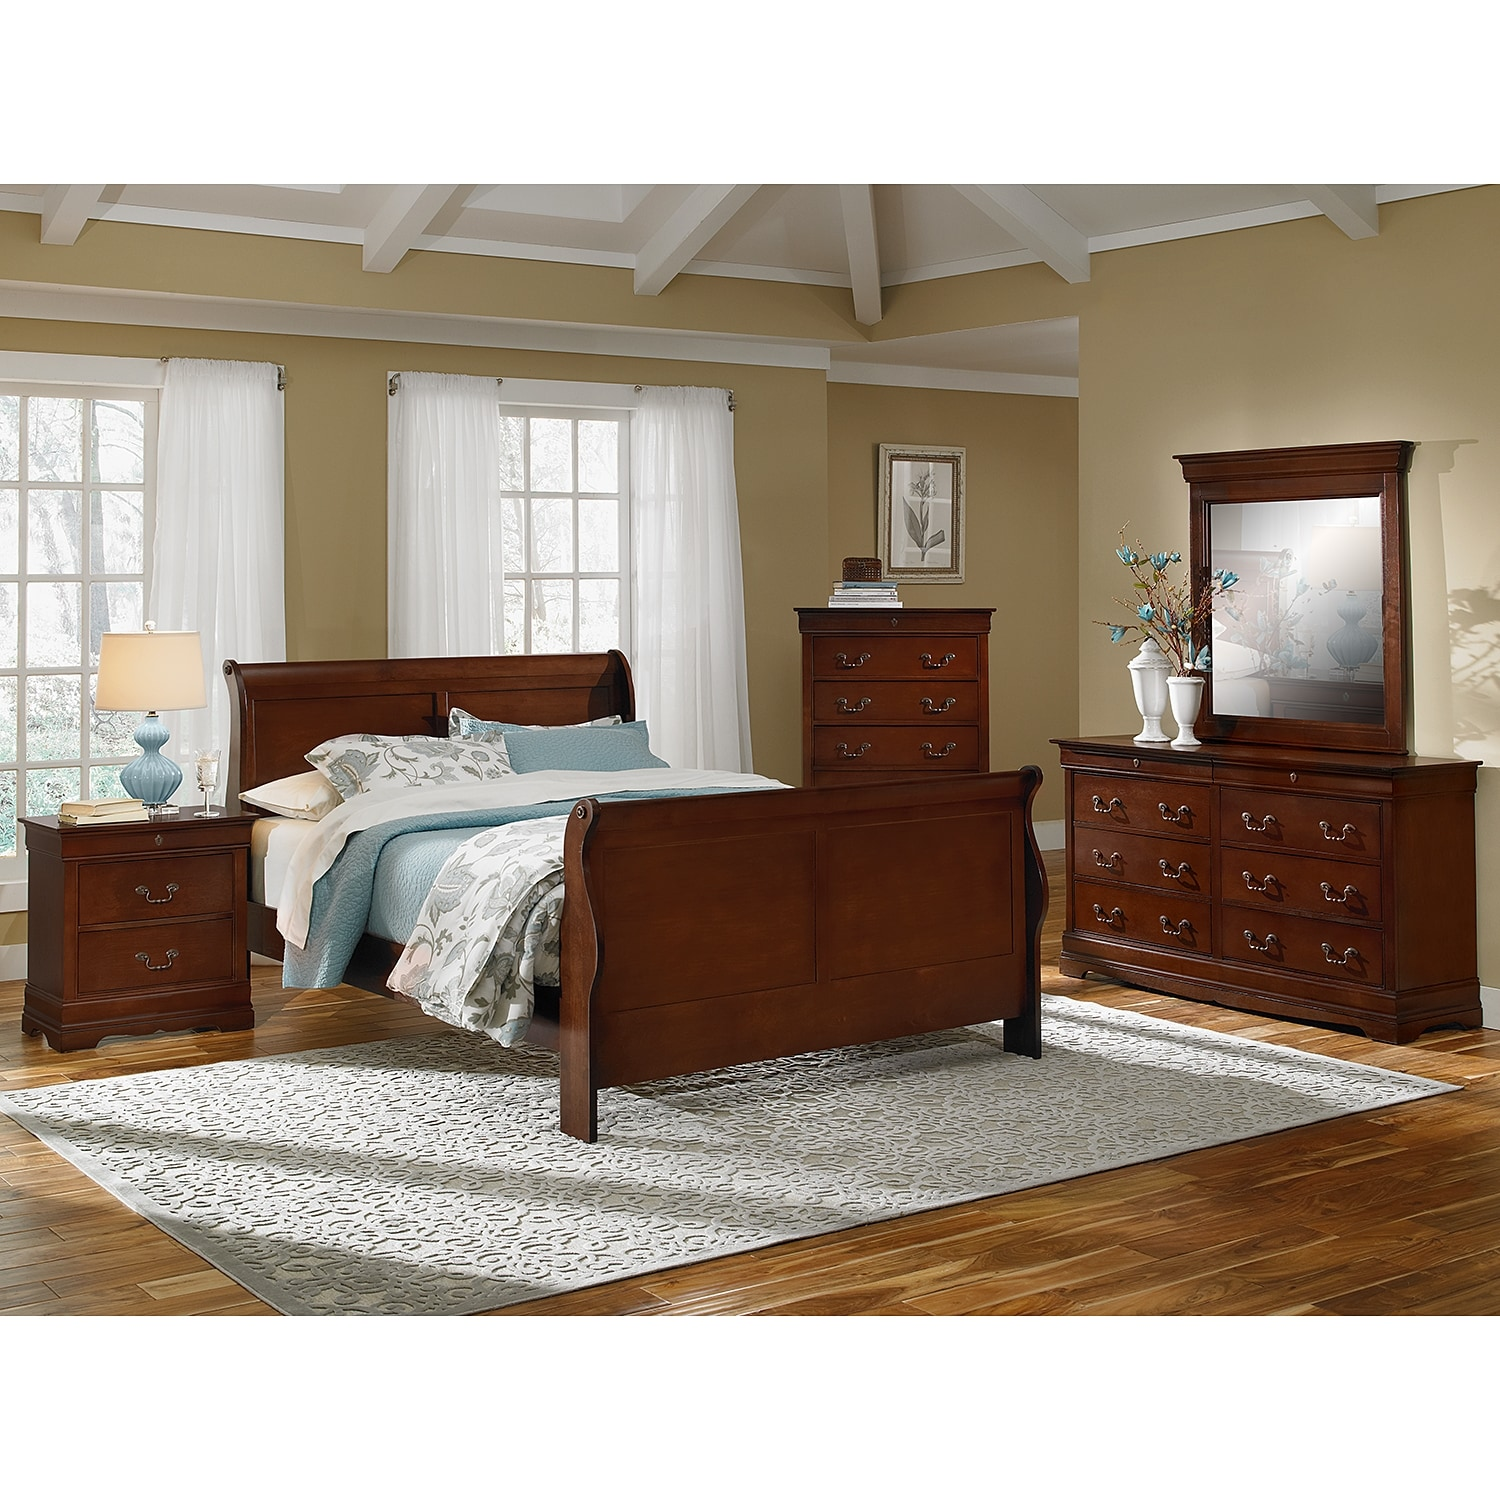 Neo Classic 7 Piece Queen Bedroom Set   Cherry